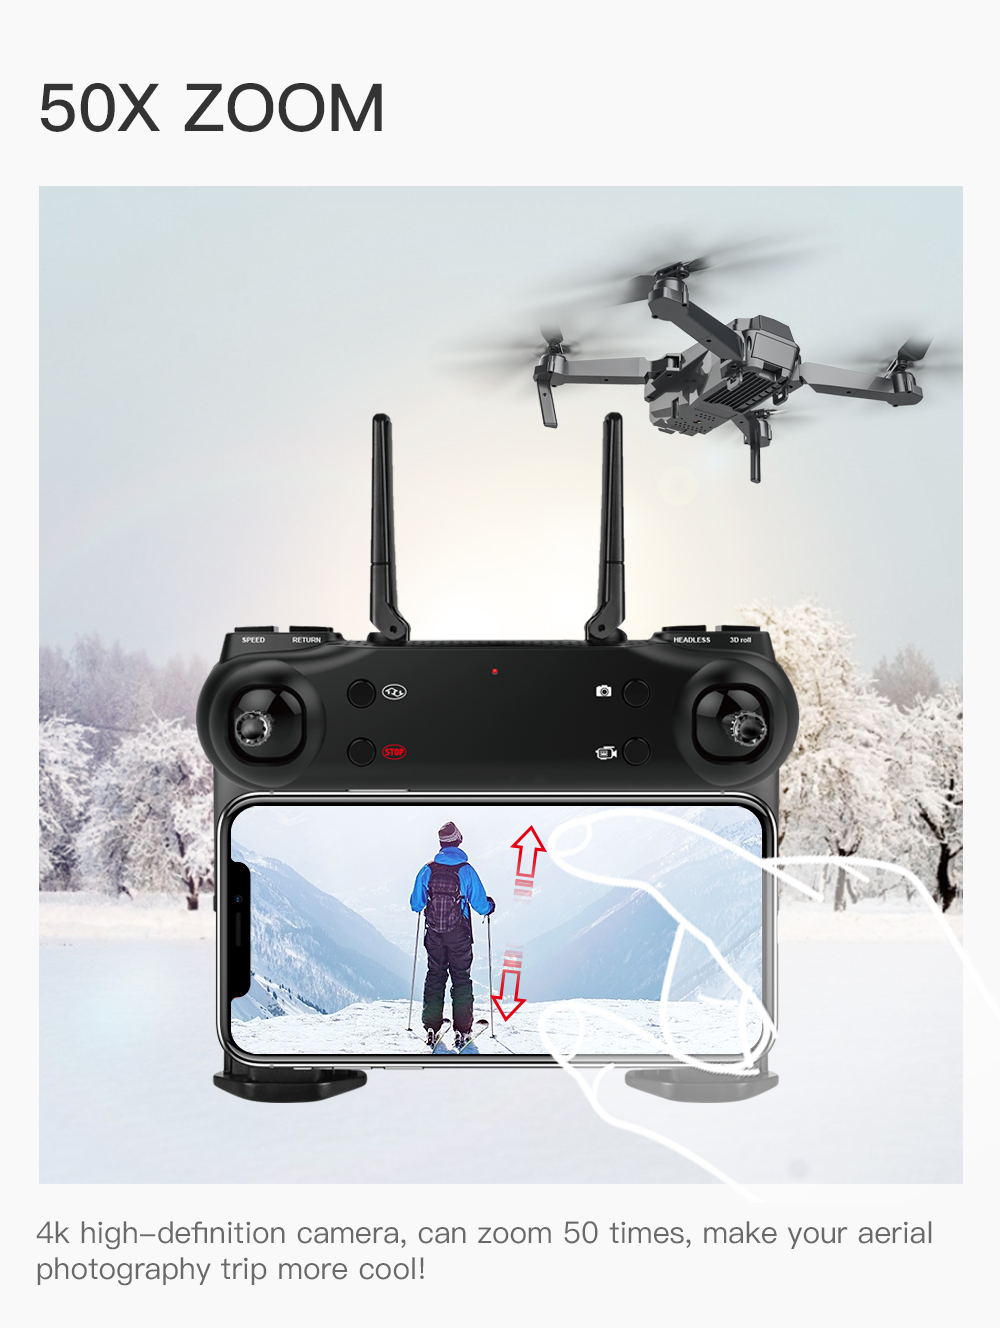 H96301fcc461b47ea96a96543e44bb46fX - Mini SG107 Drone 4k Double Camera HD XT6 WIFI FPV Drone Air Pressure Fixed Height four-axis Aircraft RC Helicopter With Camera